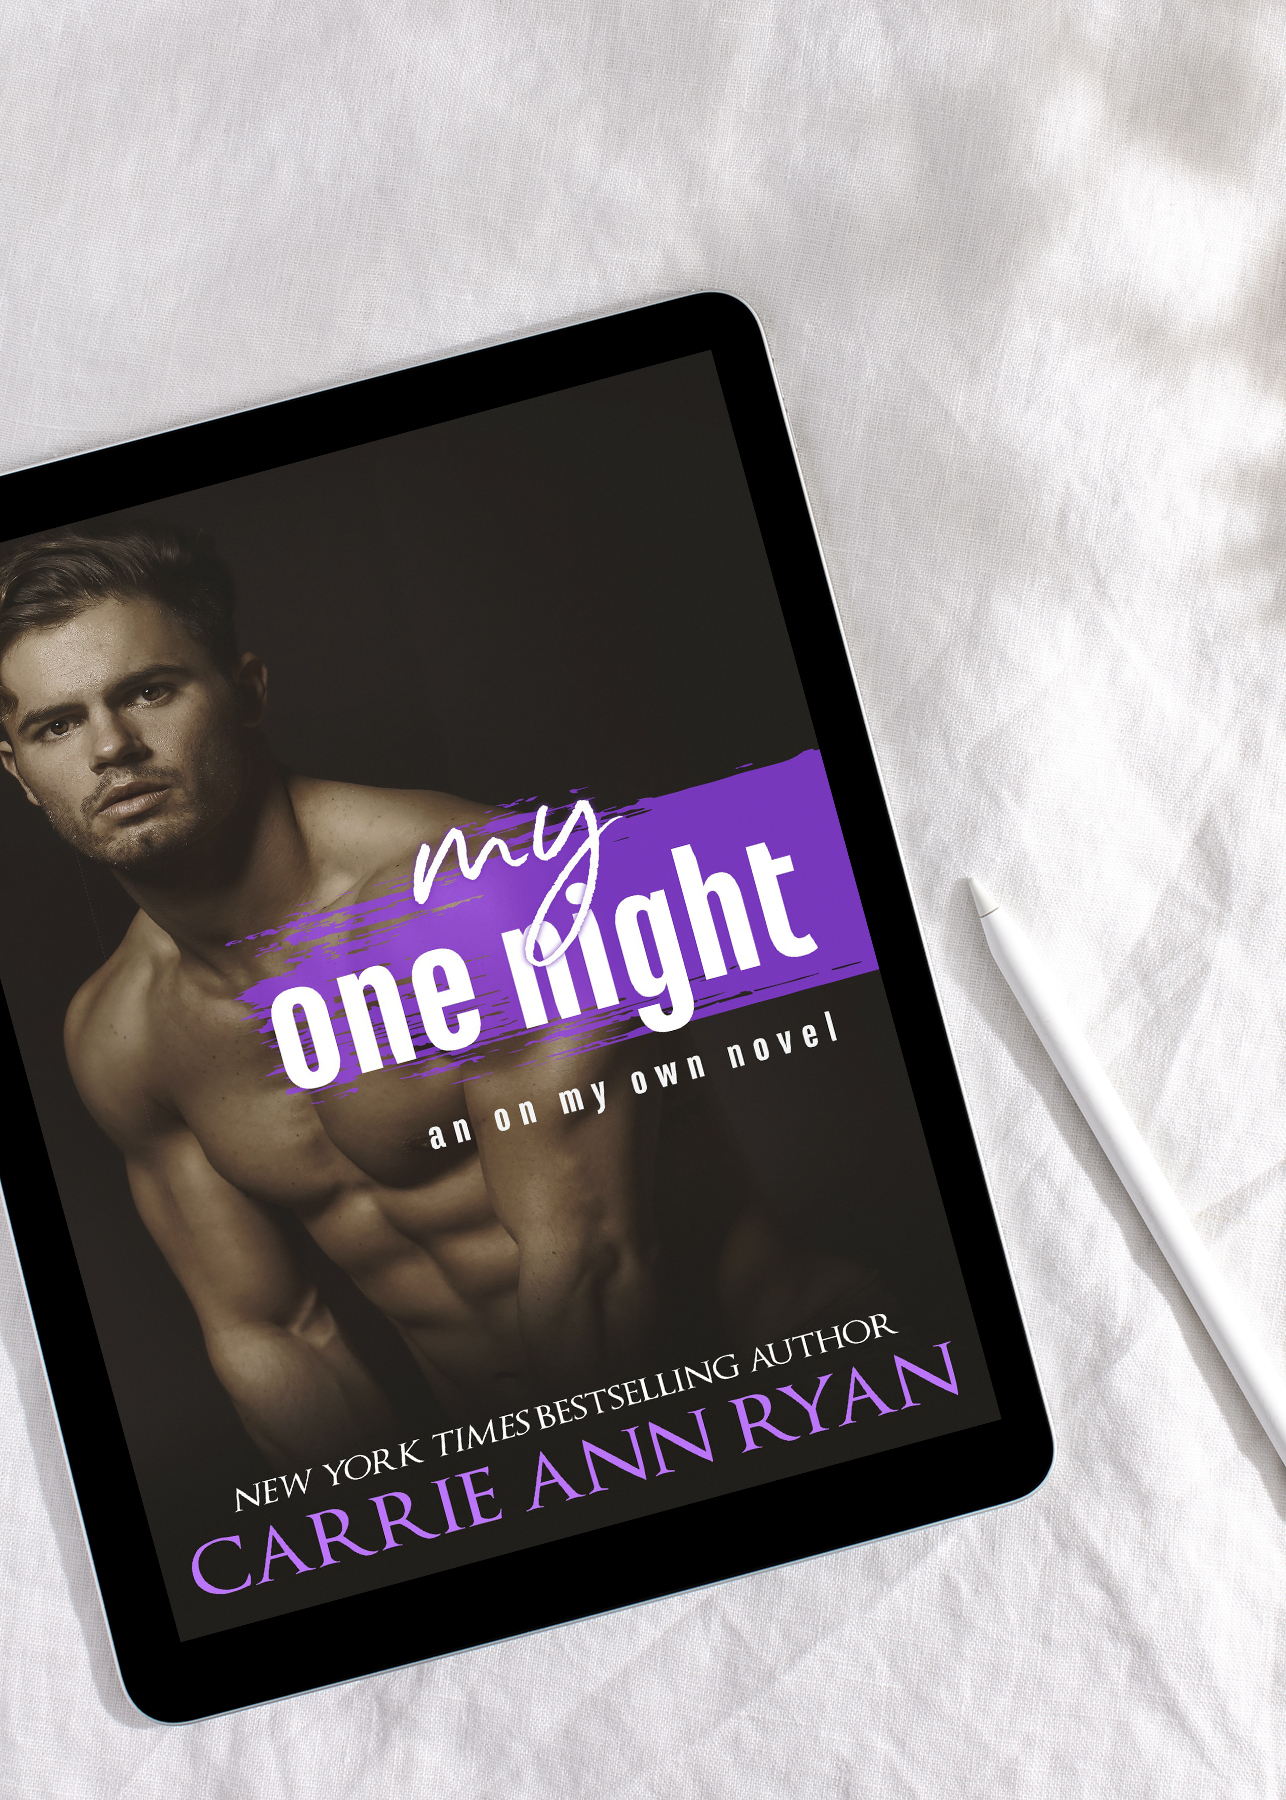 My One Night Review at Wickedly Romance